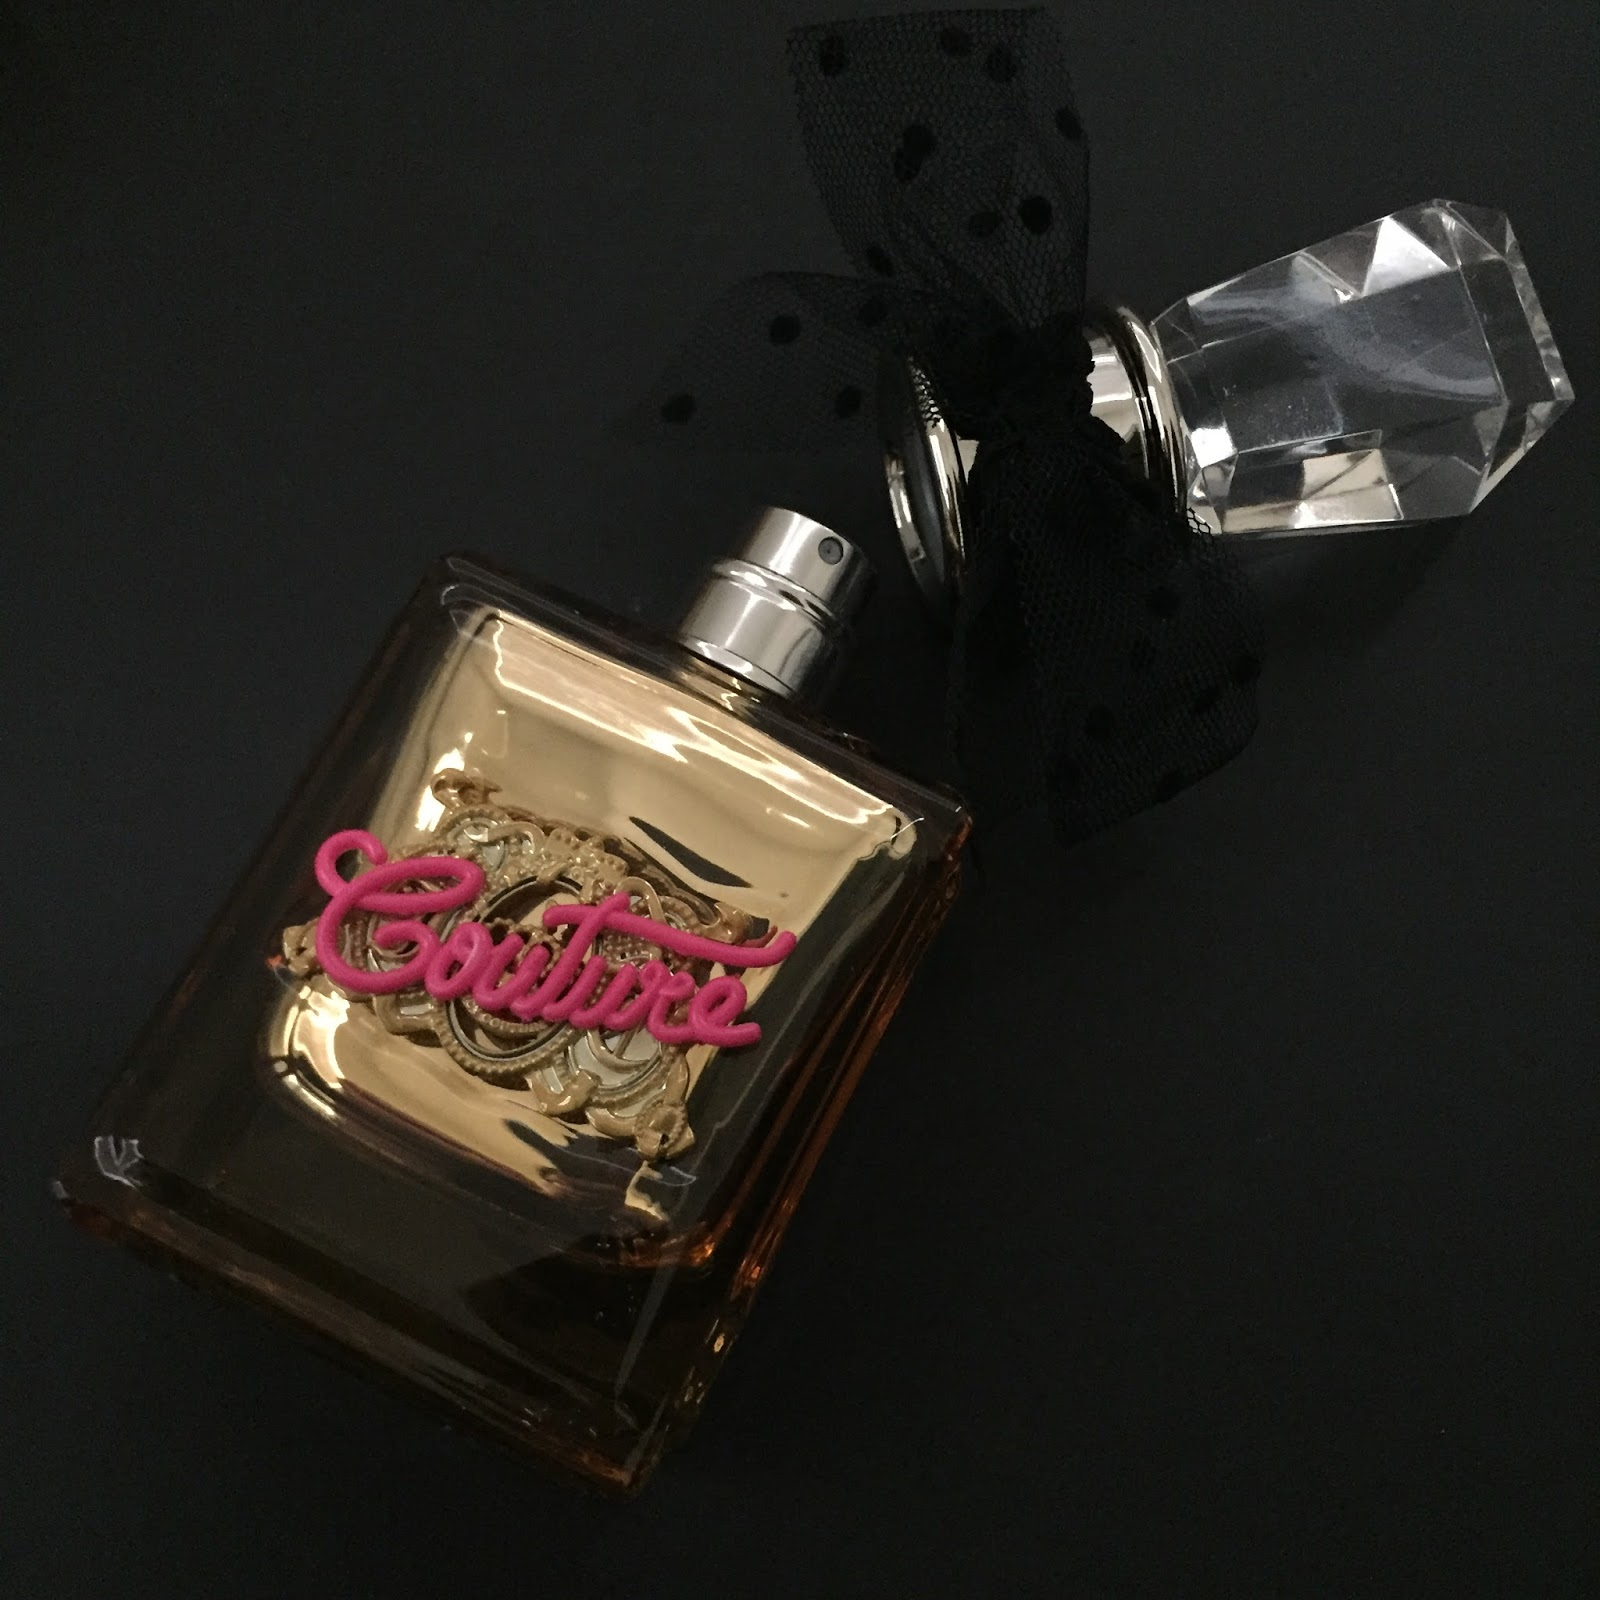 juicy gold couture perfume review